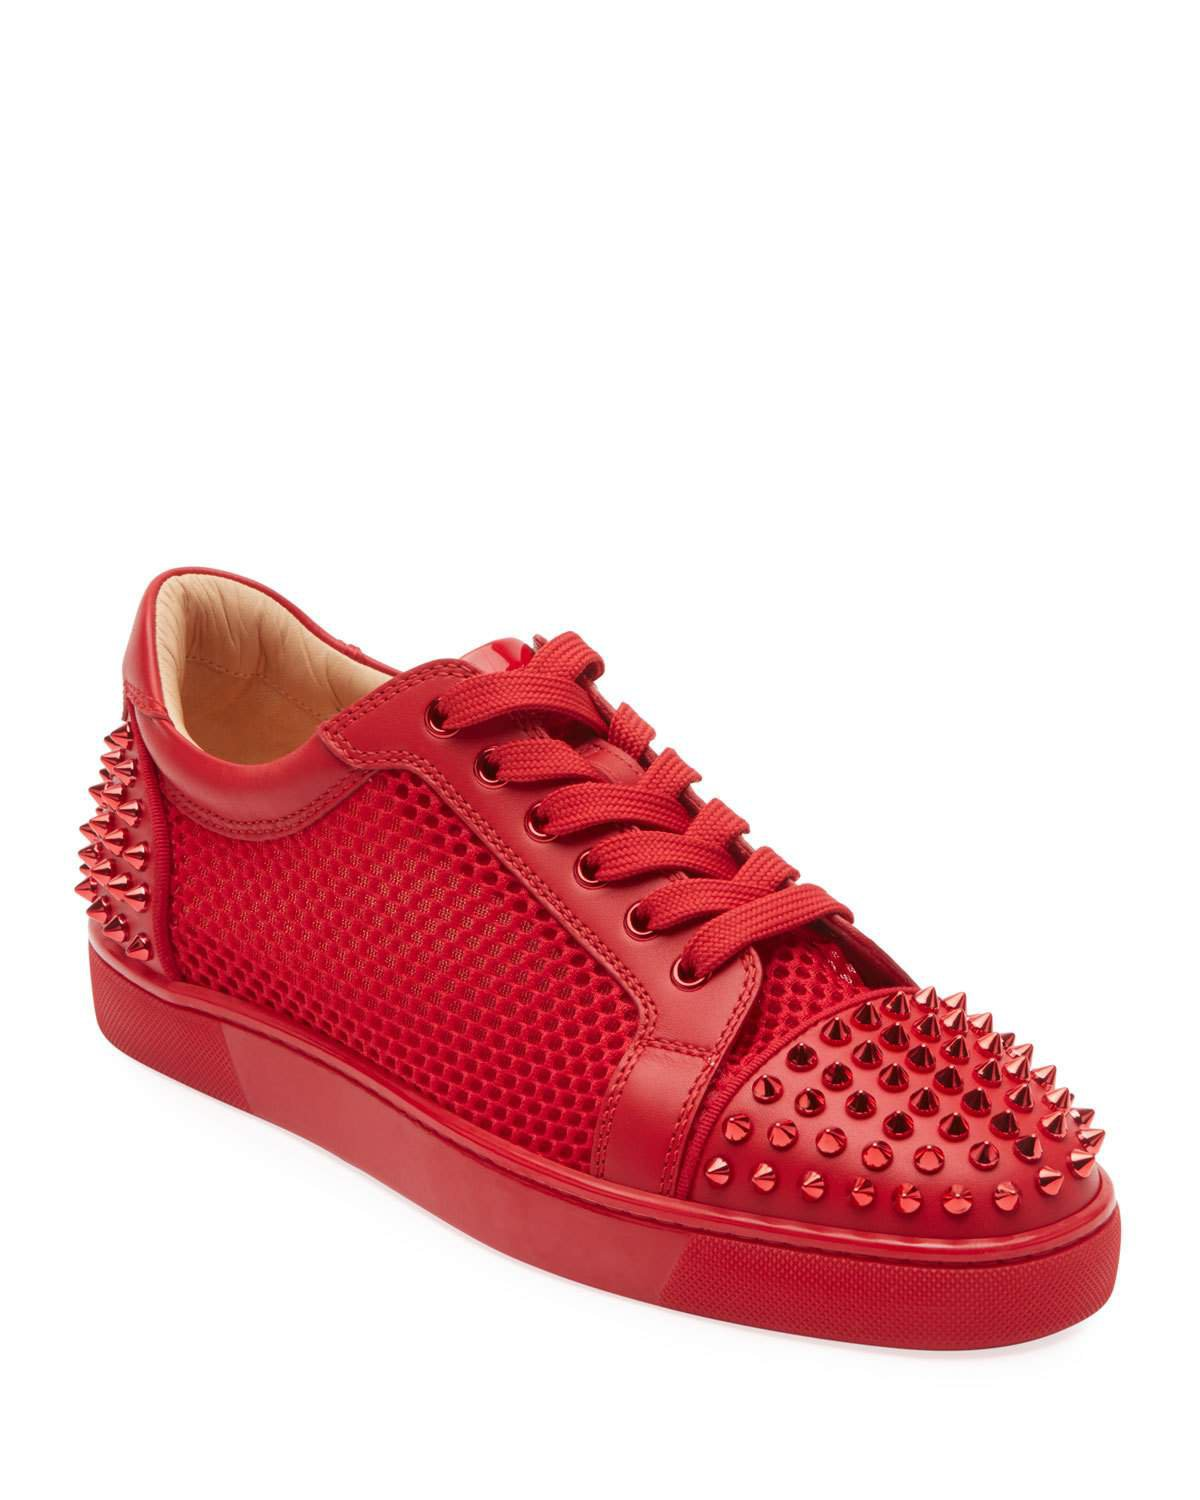 Christian Louboutin Seavaste Spiked Leather Low-Top Sneakers